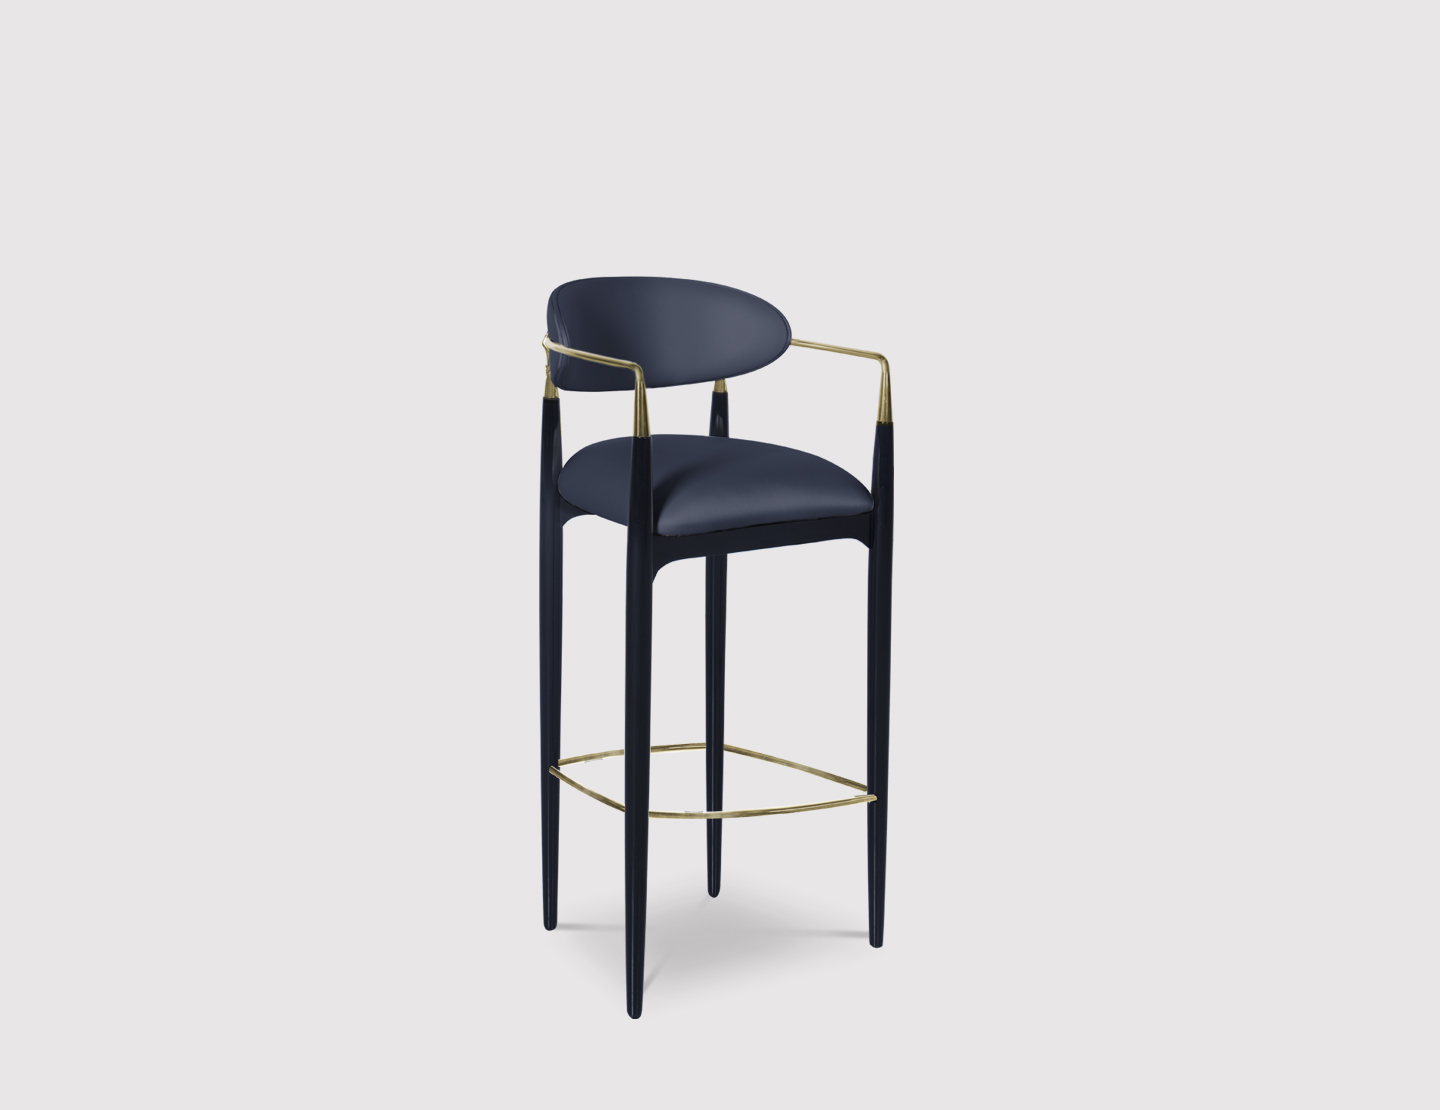 Mimi Bar/Counter Stool by KOKET